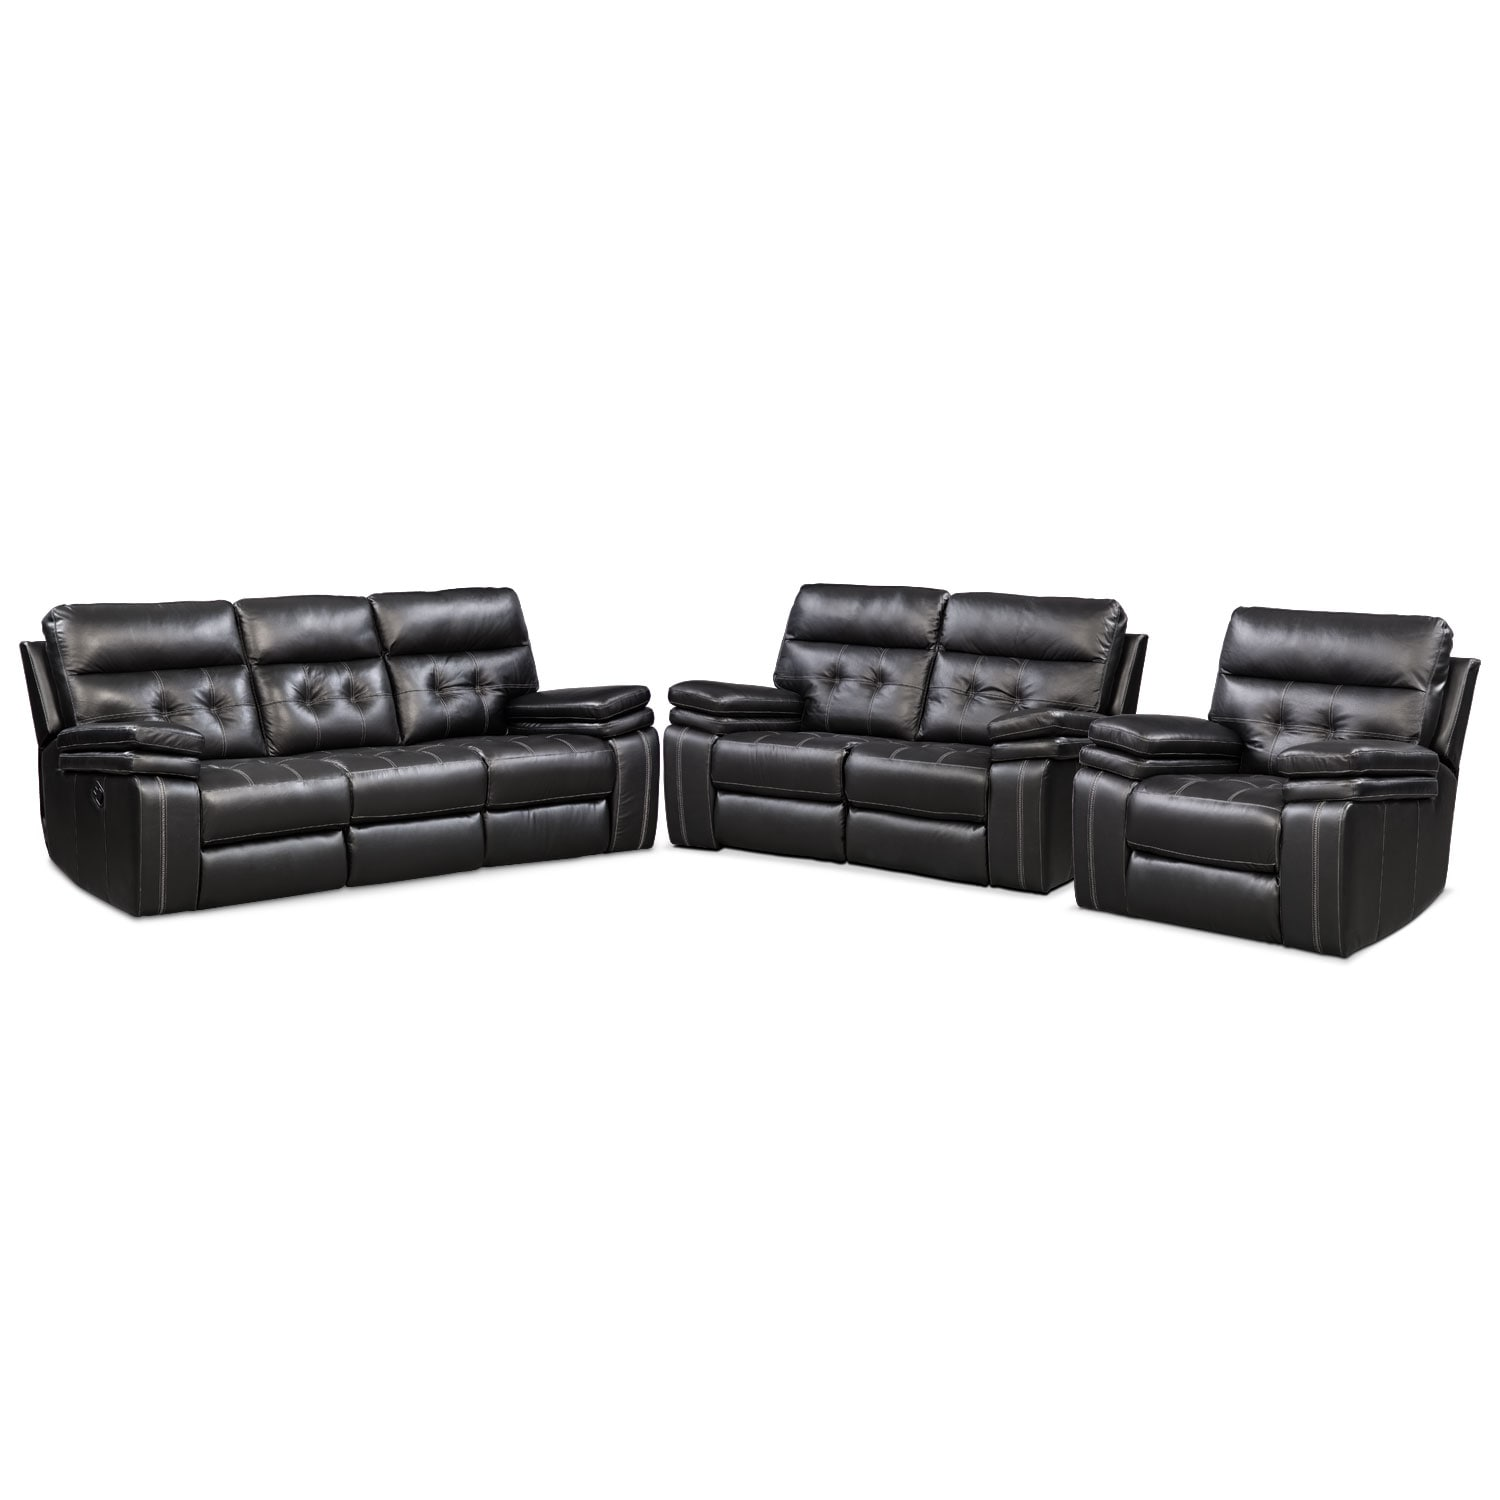 Brisco Manual Reclining Sofa Reclining Loveseat And Recliner Set Black American Signature